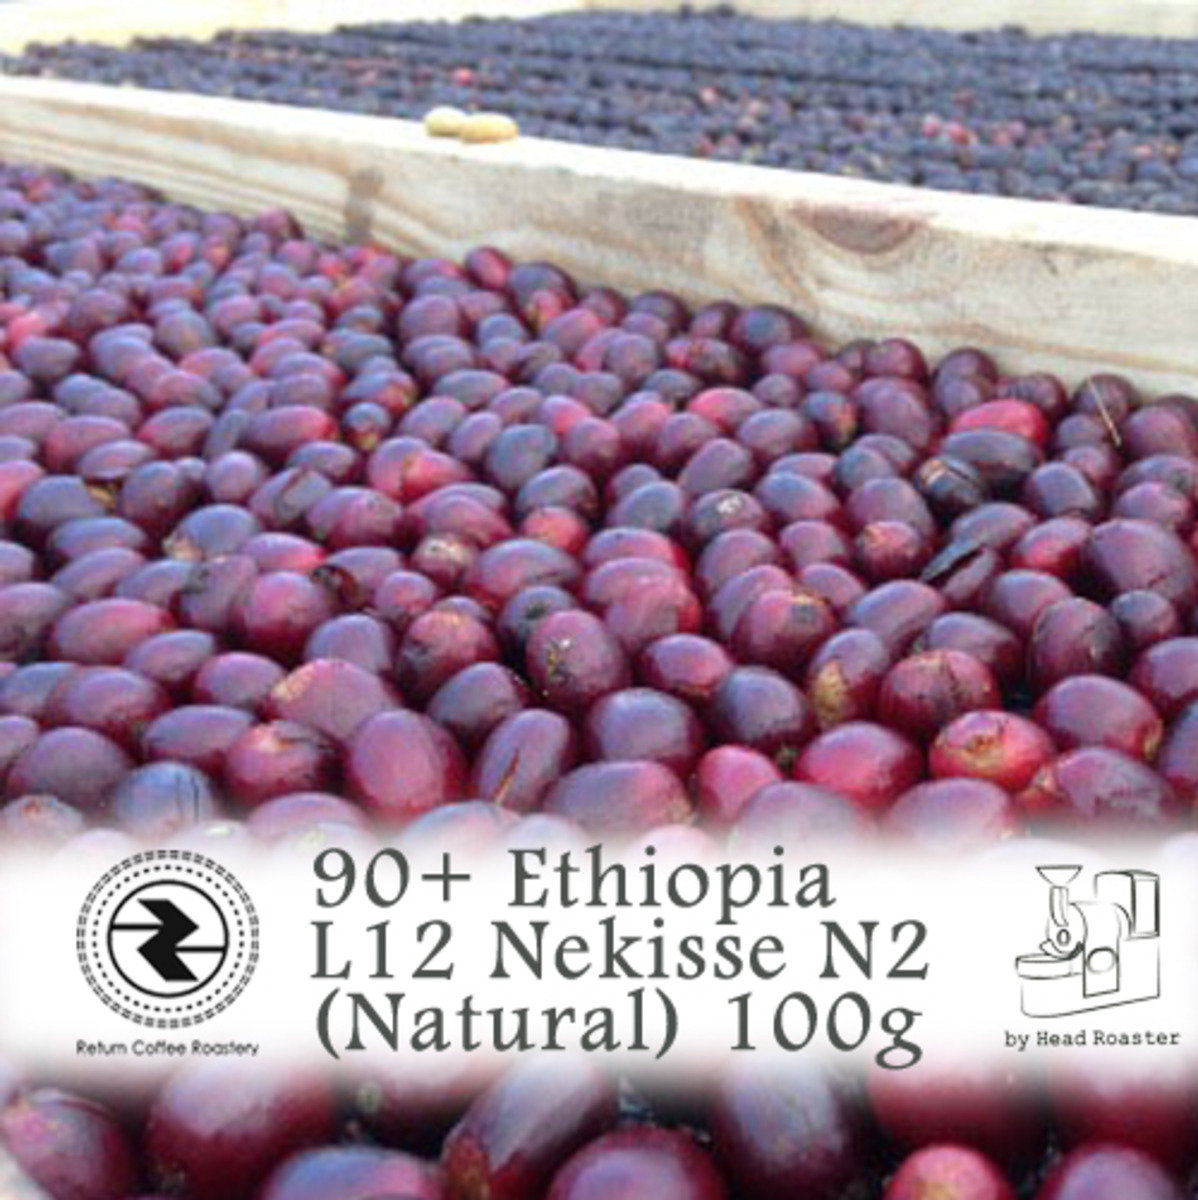 L12 Nekisse N2 (Natural) by Head Roaster